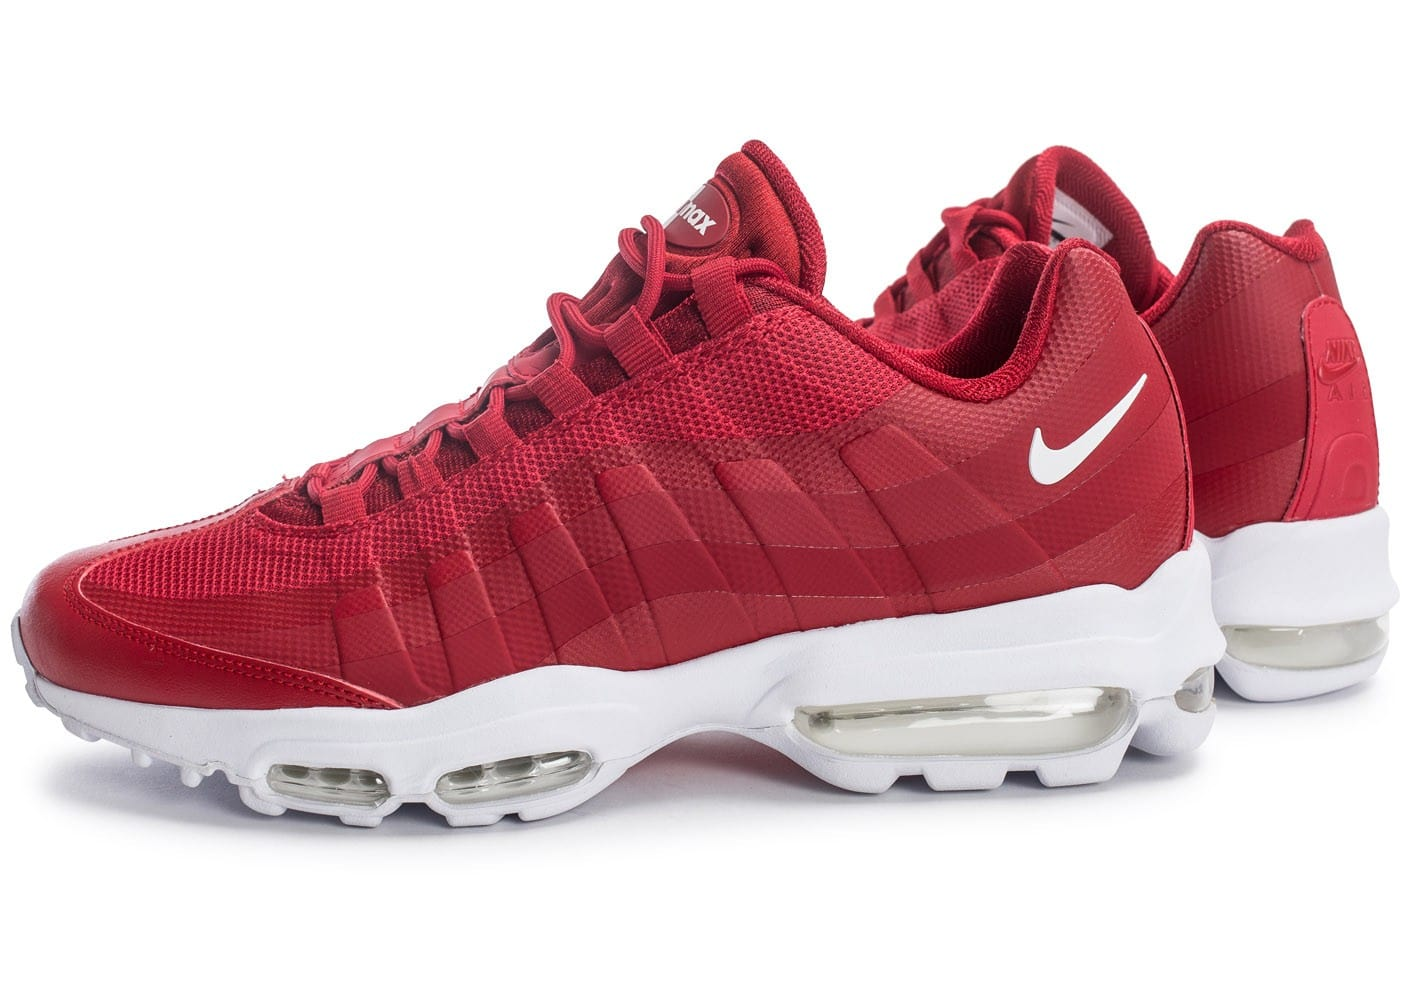 Nike Femme Chaussure Chaussure Rouge Rouge Femme Femme Chaussure Nike Nike Chaussure Rouge eYWDI29EH